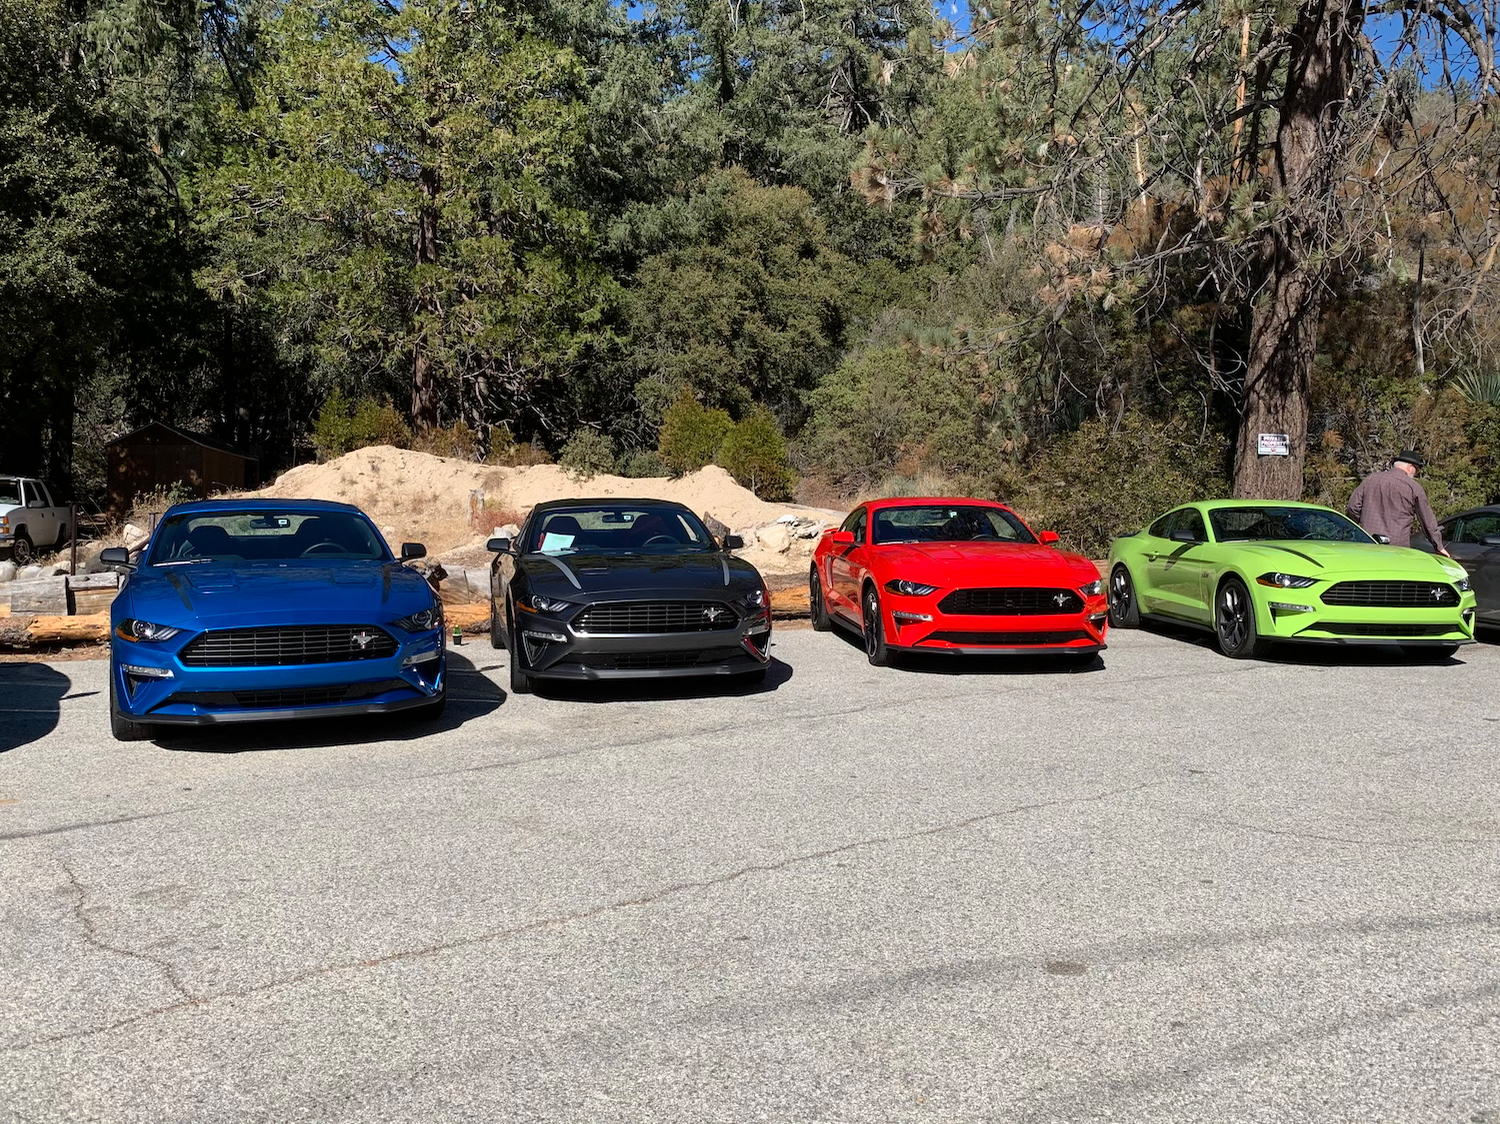 New mustangs in row